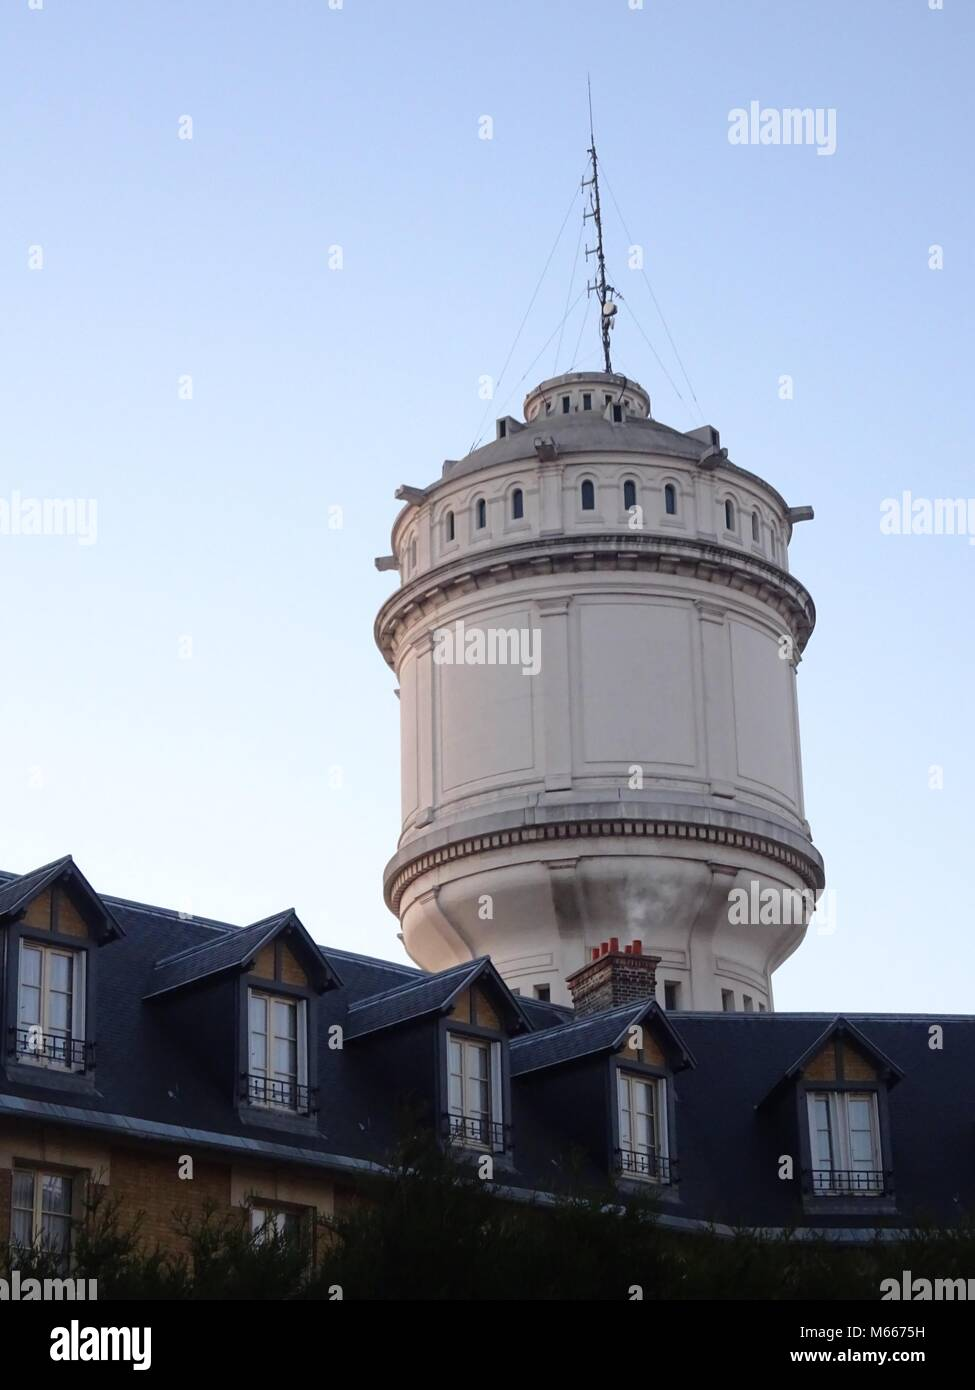 Majestic Ancient Water tower at  butte Montmartre. Paris, France - Stock Image